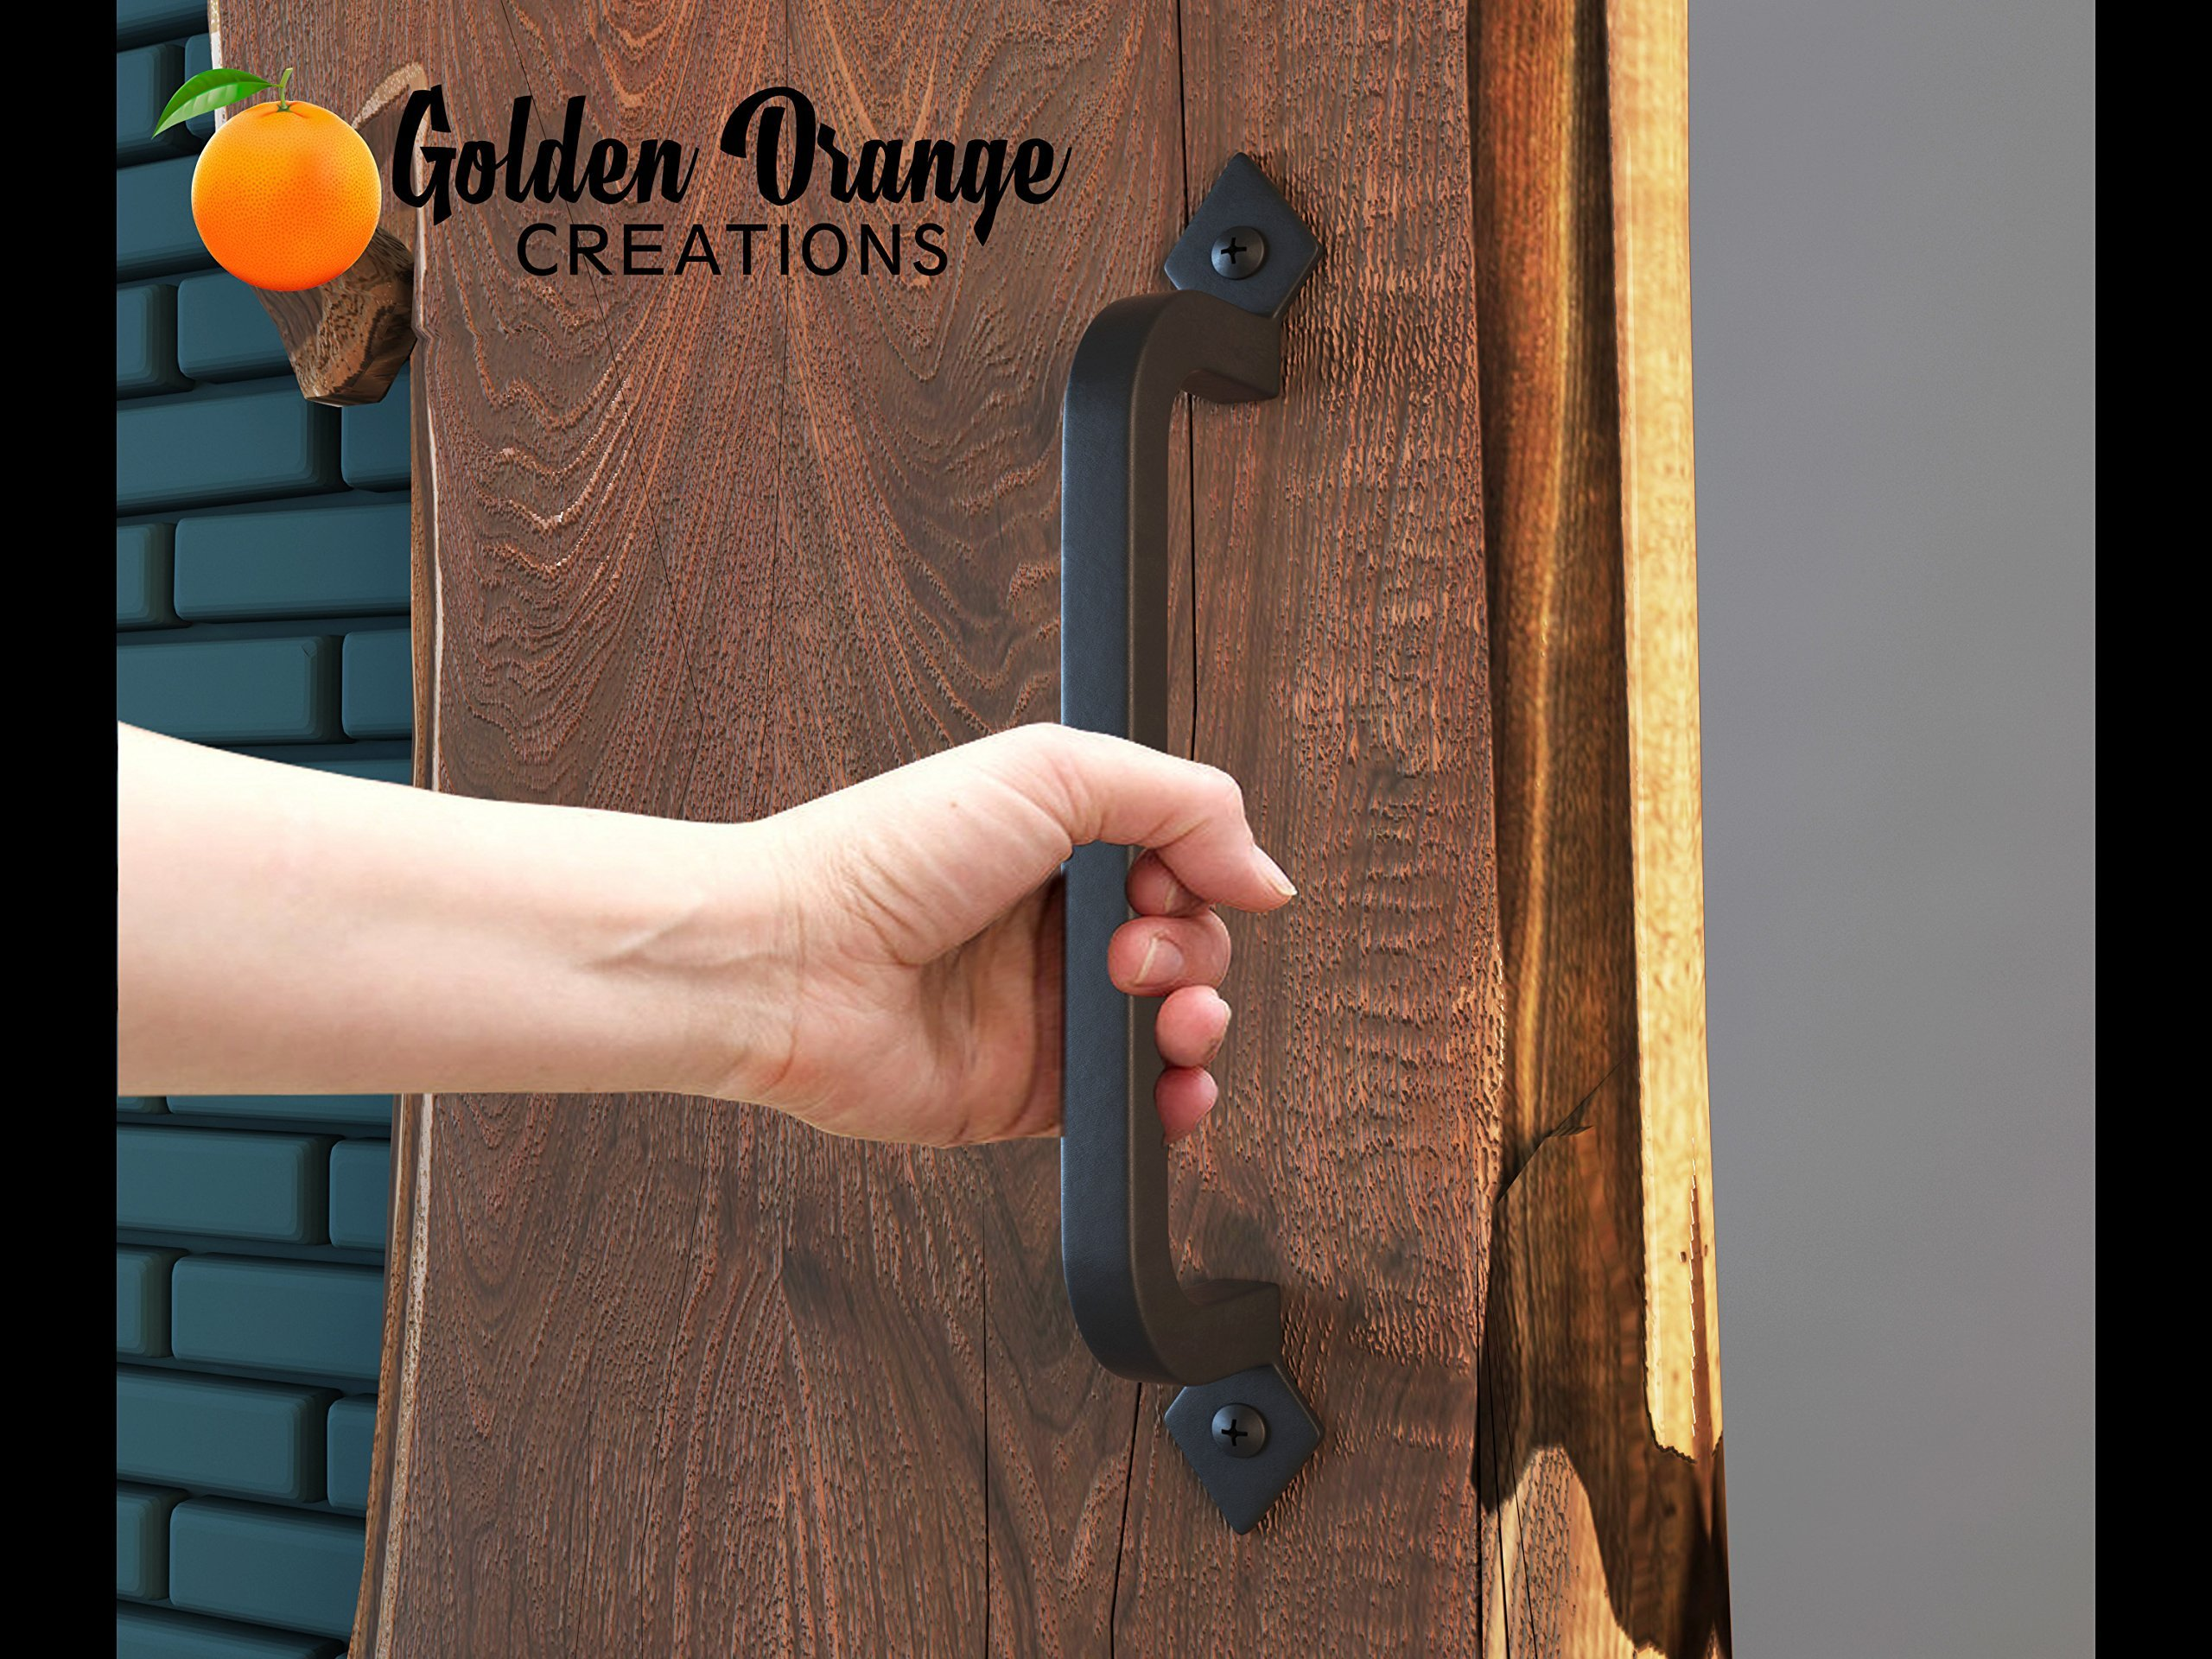 9-3/4'' Antique Barn Door Pull Handle with 2 Matching Black Screws - for Custom and Luxury Sliding Barn Doors, Pantry, Closet, Furniture, Garage, Gate, Shed - Solid Cast Iron Hardware Handle by Golden Orange Creations (Image #7)